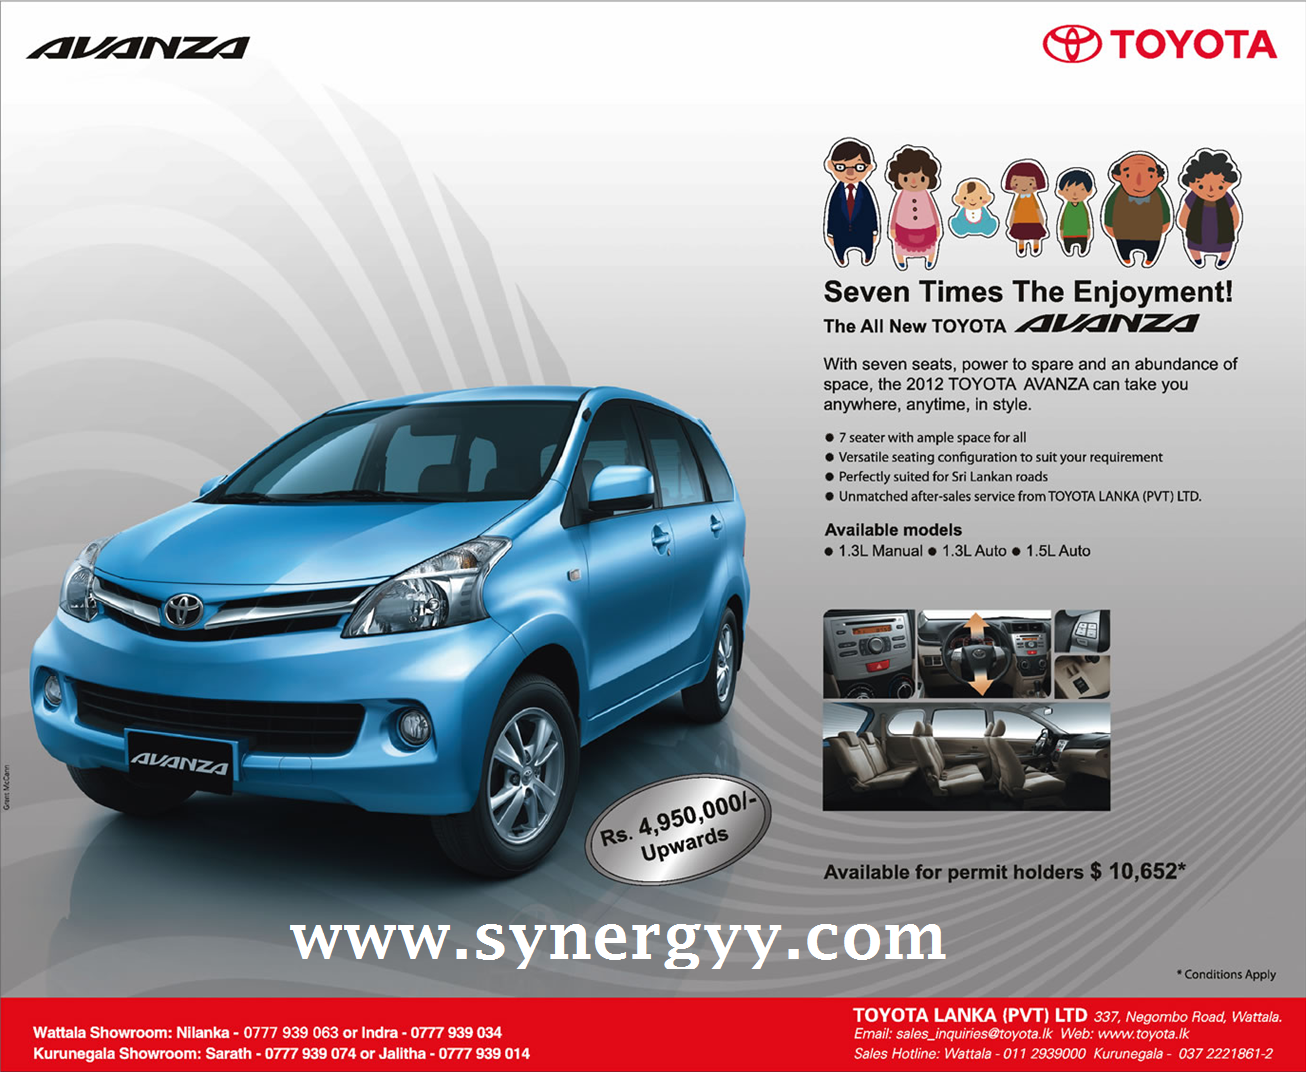 Toyota AVANZA for Rs  4,950,000 00 Upwards From Toyota Lanka